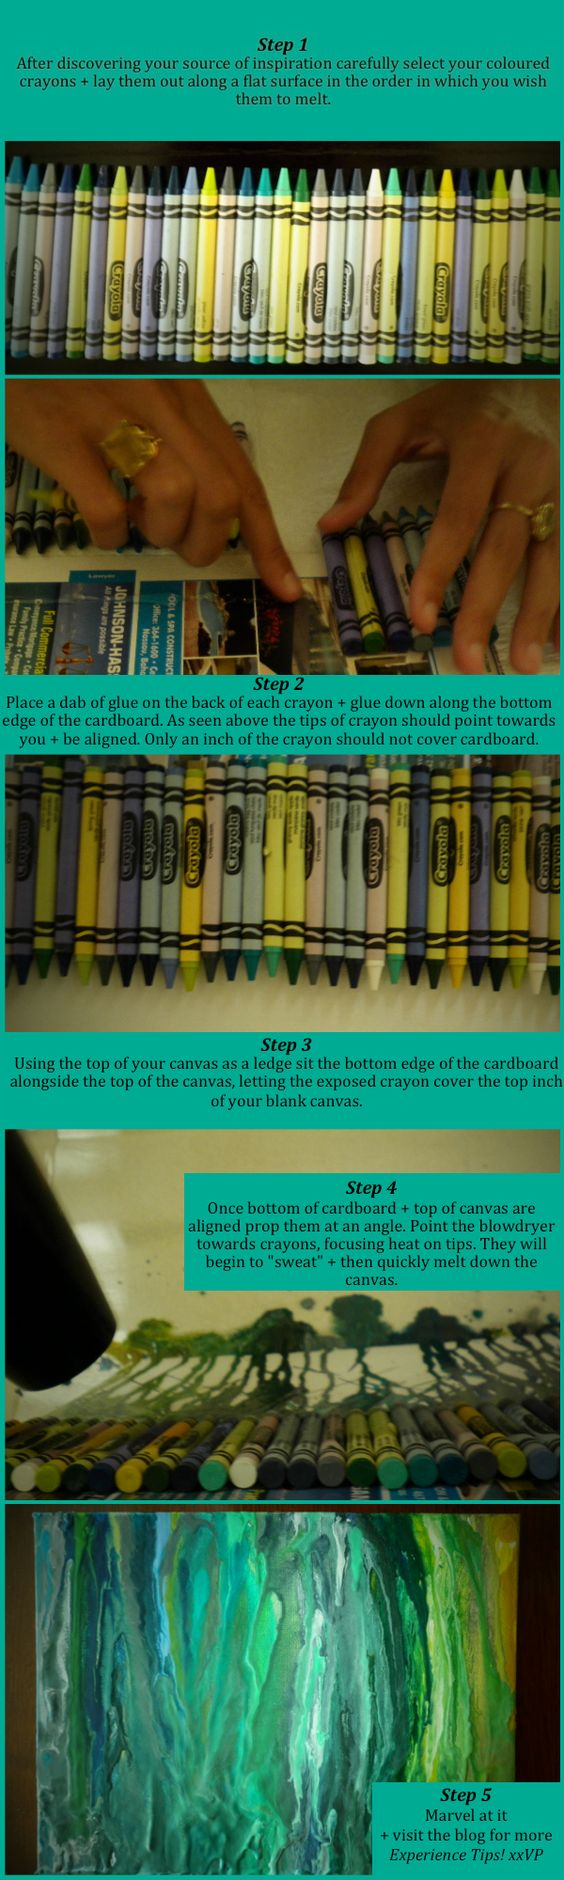 How to make melted crayon art...without gluing the crayon to the canvas!